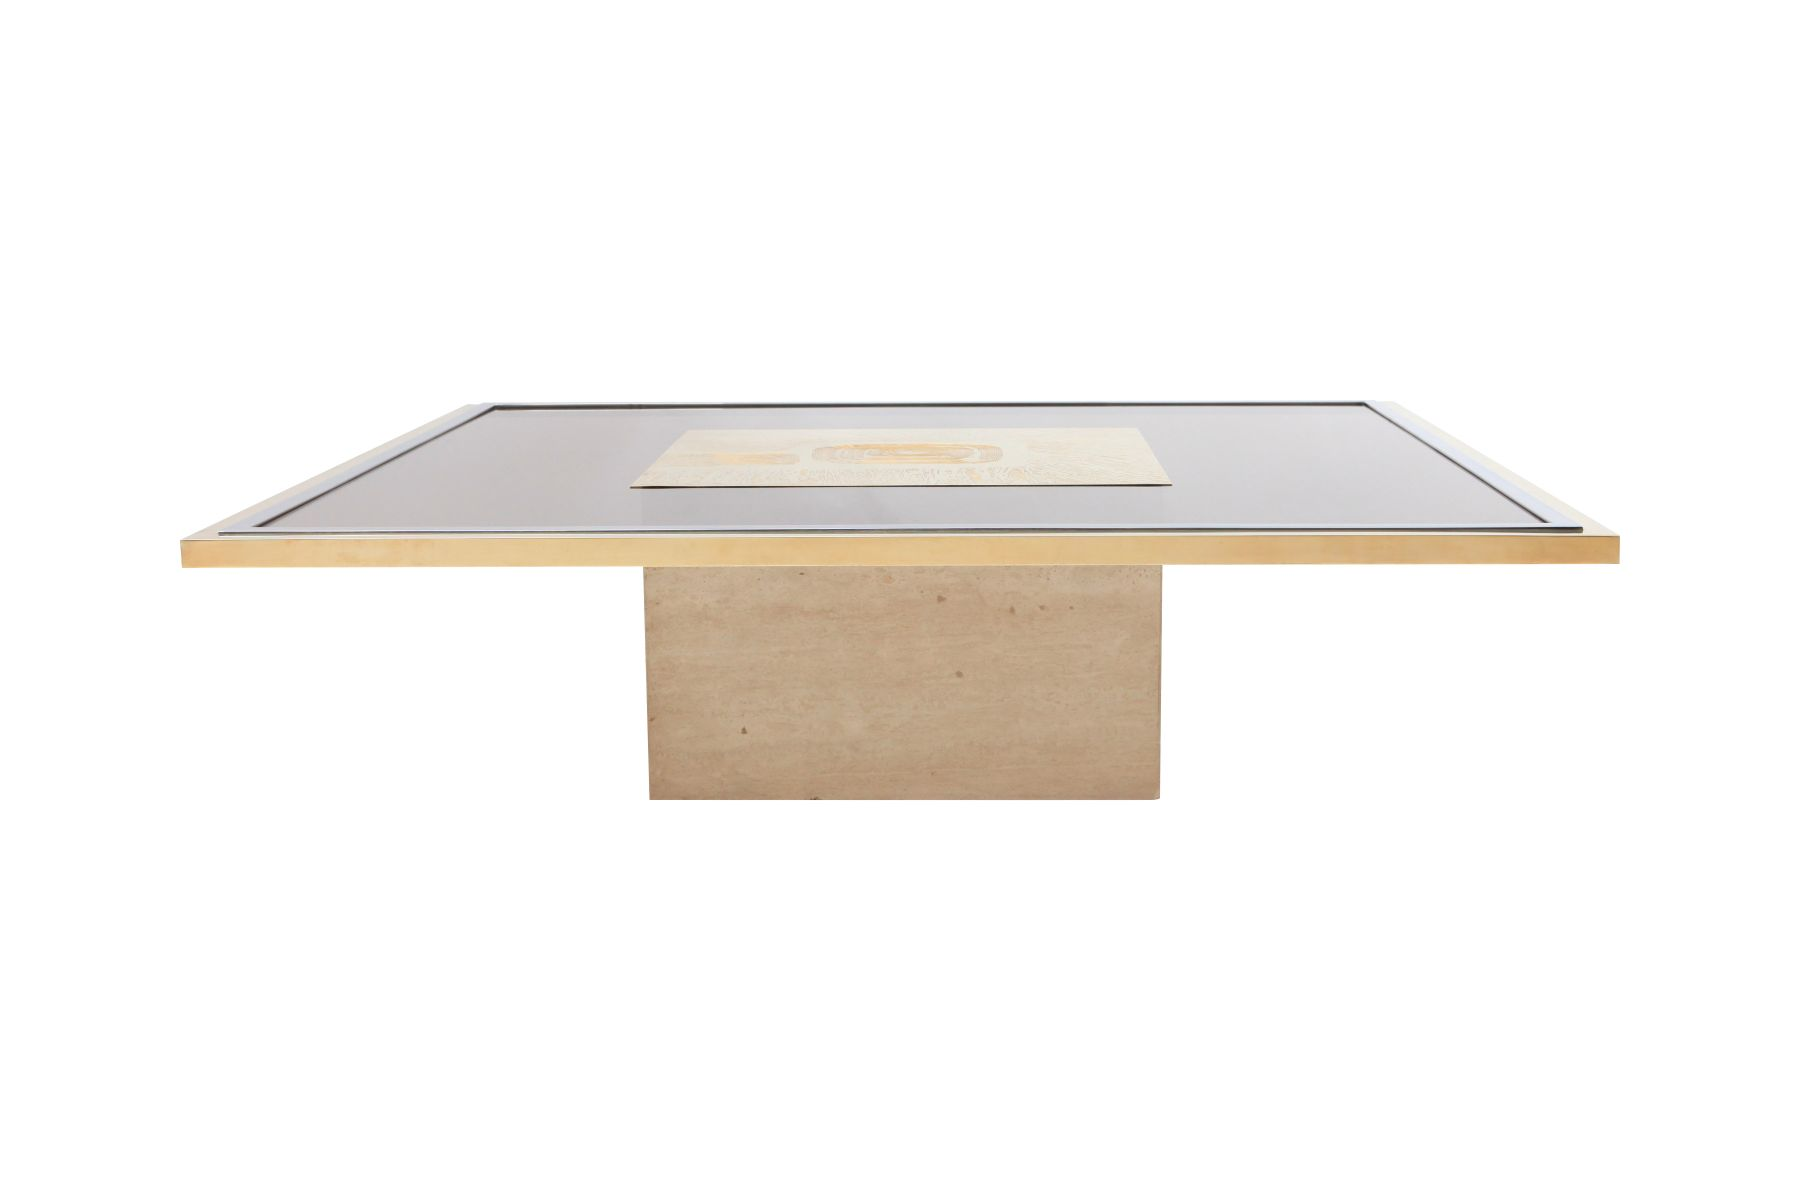 Brass Etched Coffee Table by George Matthias 1970s for sale at Pamono